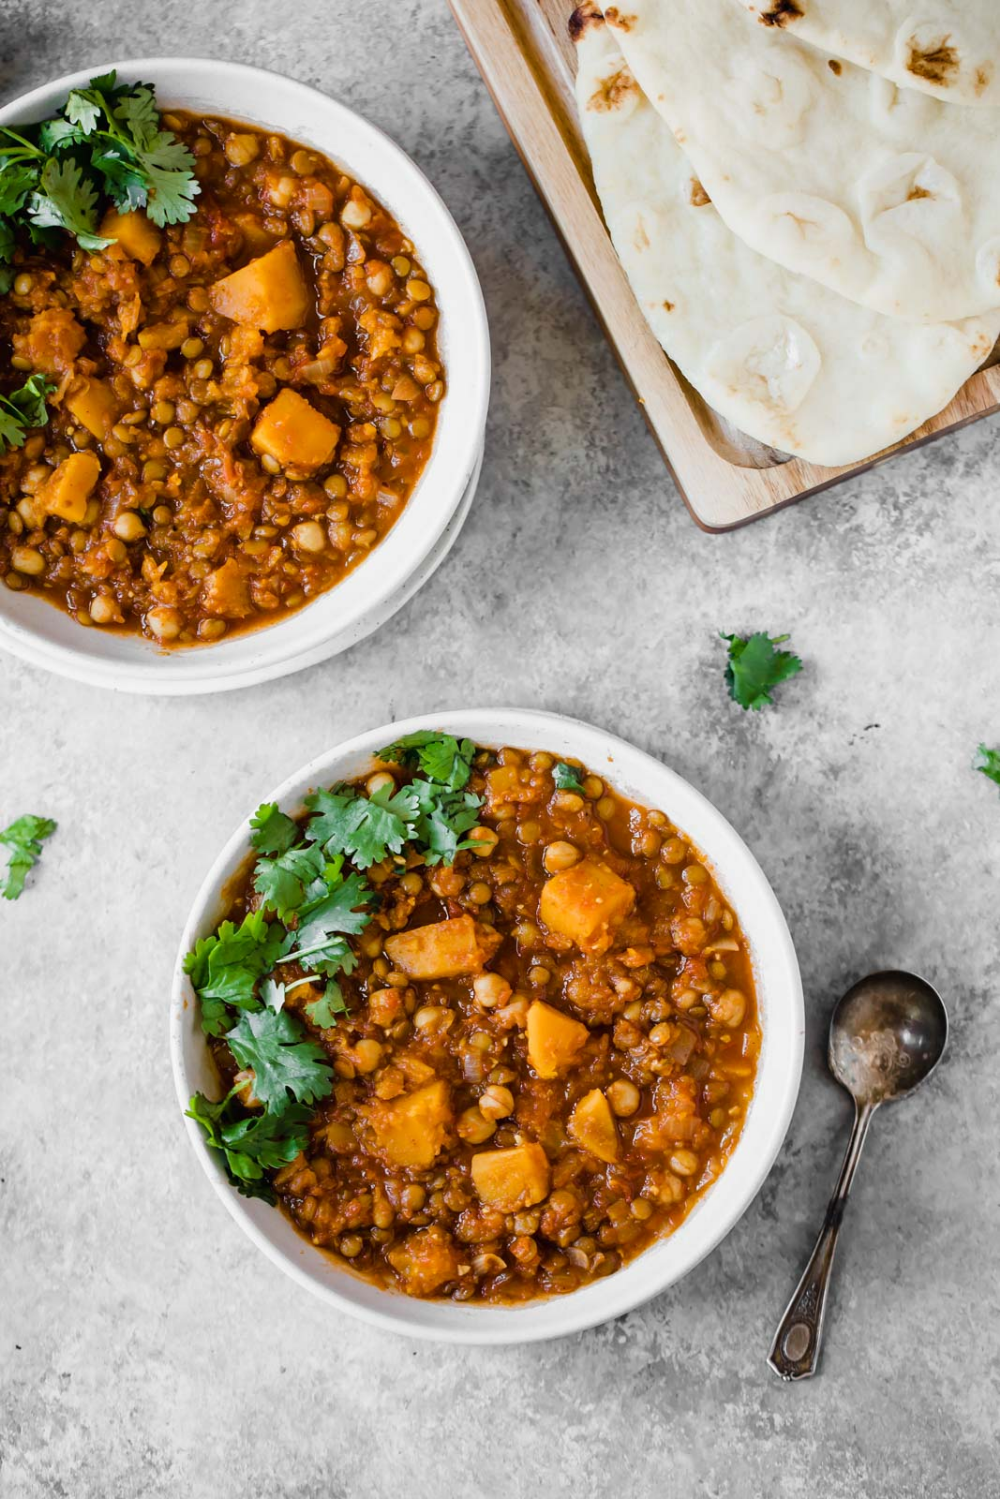 A healthy Moroccan stew with cozy spices, butternut squash, chickpeas, and lentils! You'll love this protein and fiber packed meal! #moroccanfood #comfortfood #healthyfood #healthydinner #vegetarianfood #vegetarianrecipe